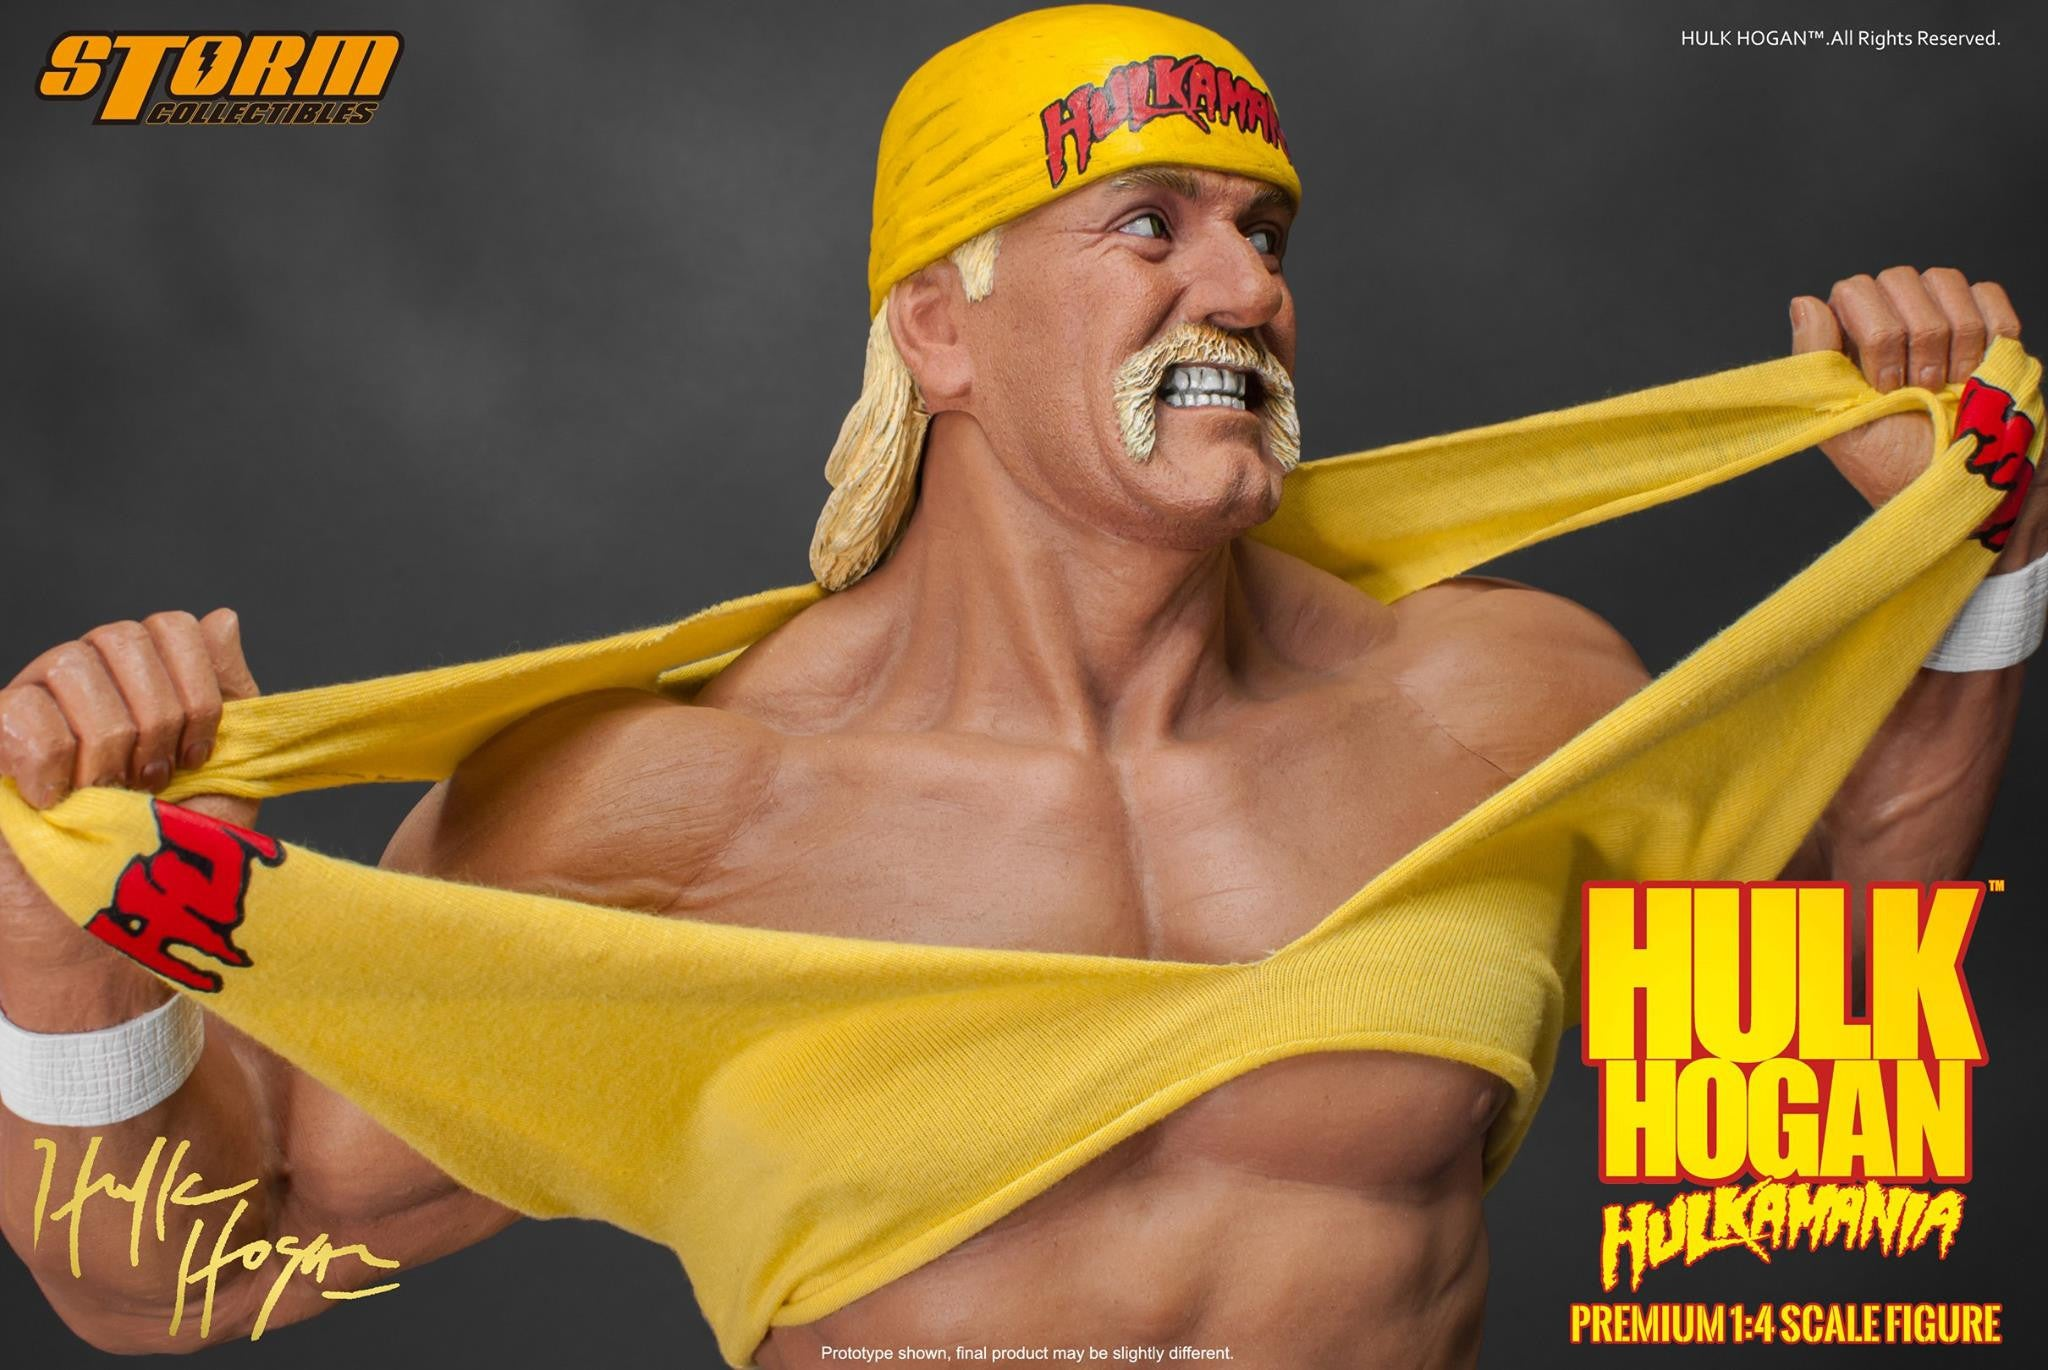 Storm Collectibles - 1/4th Scale Premium Figure - Hulk Hogan Hulkamania - Marvelous Toys - 6